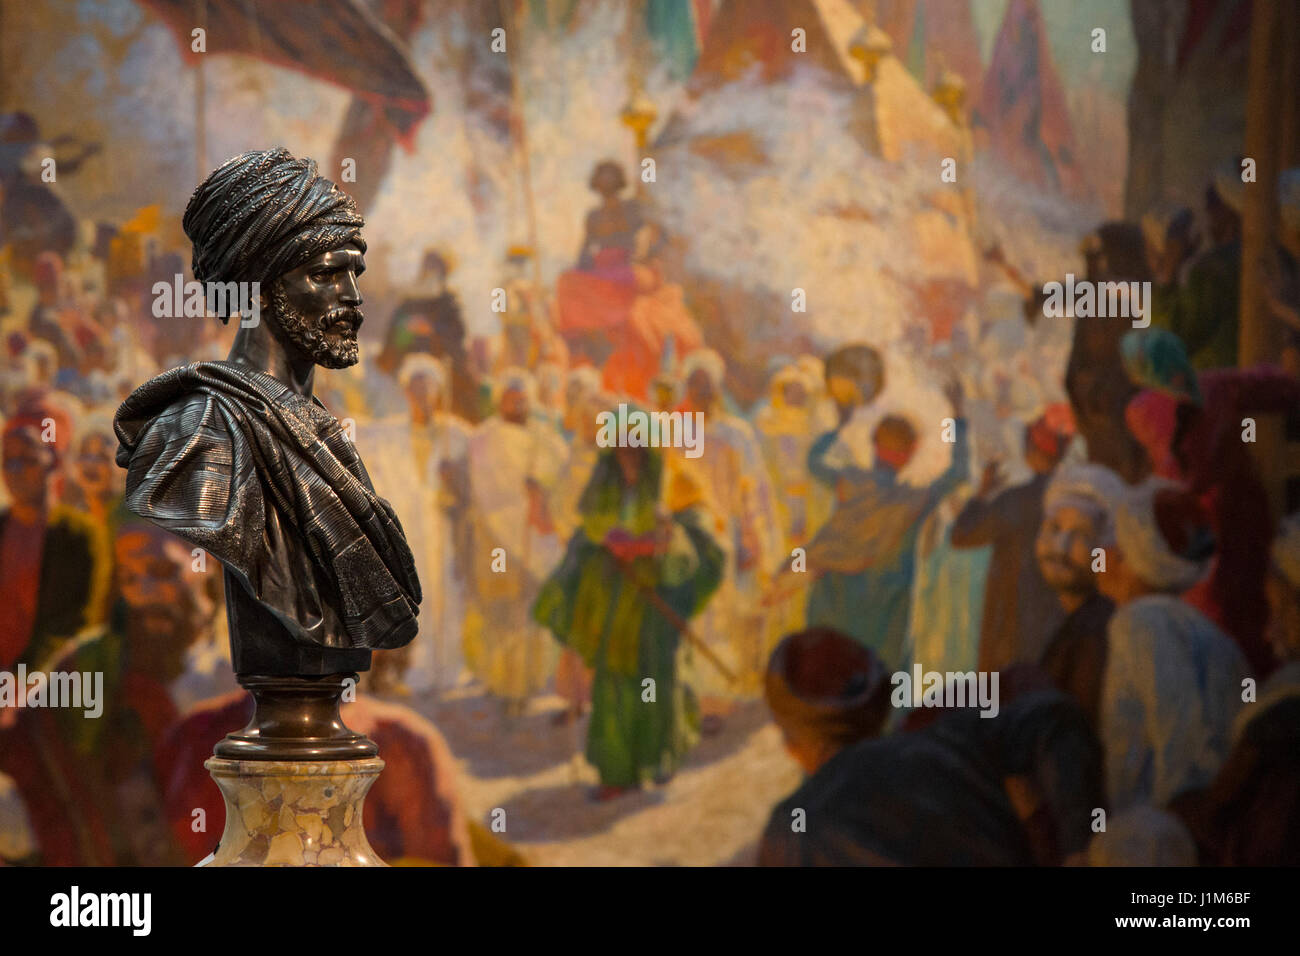 London, UK. 21 April 2017. Arab Sheikh of Cairo bust by Charles-Henri-Joseph Cordier, est. GBP 30,000-50,000 in - Stock Image